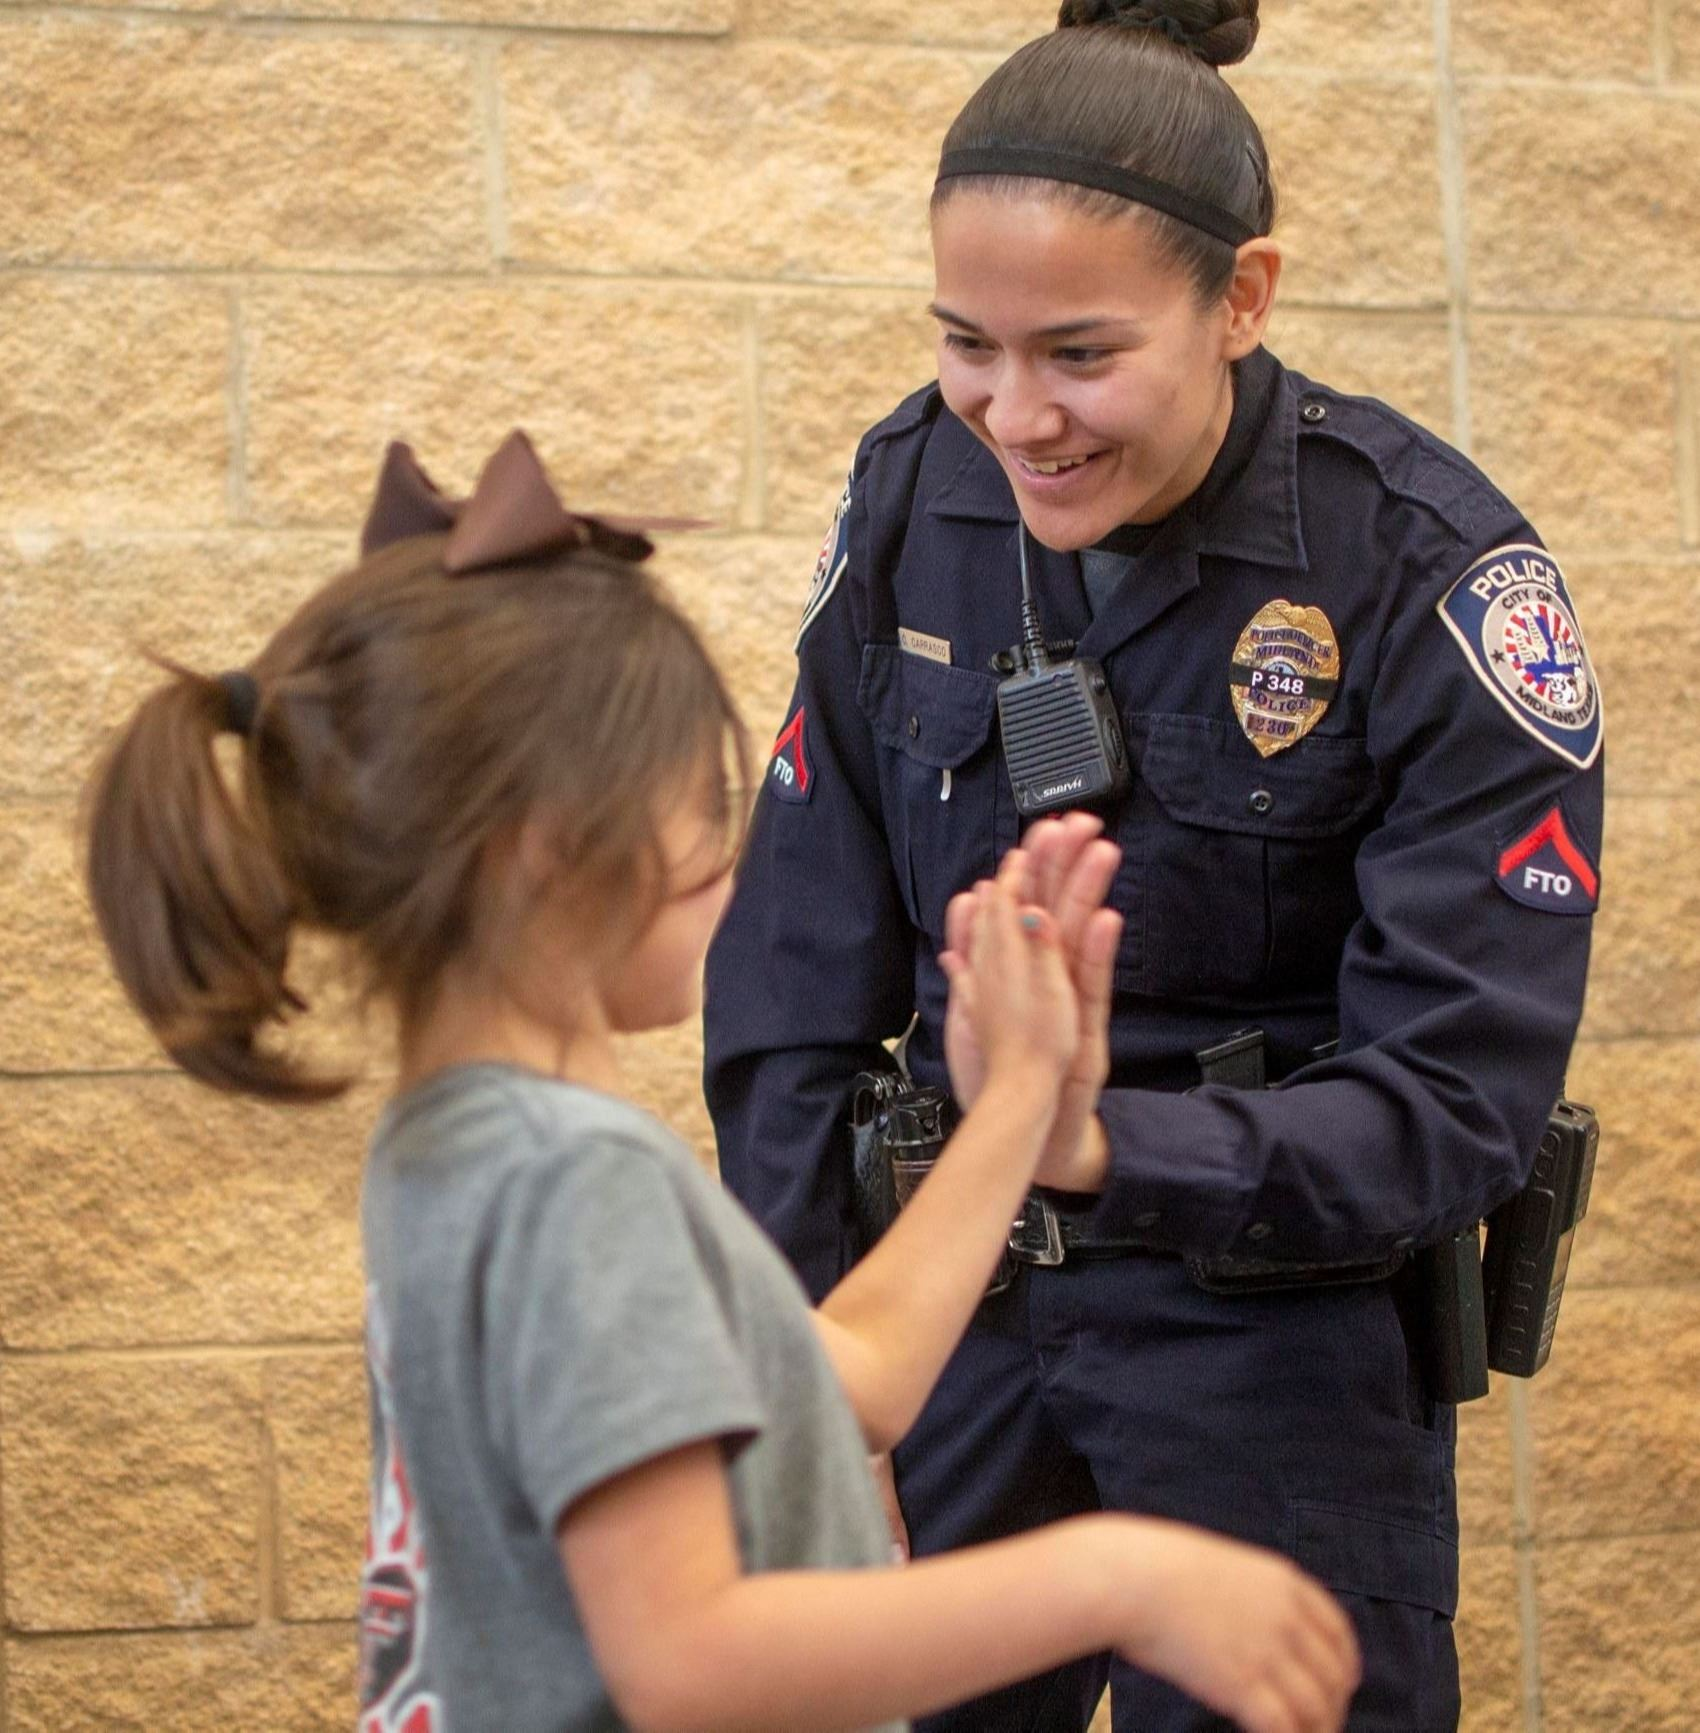 A photo of a police officer high-fiving a child